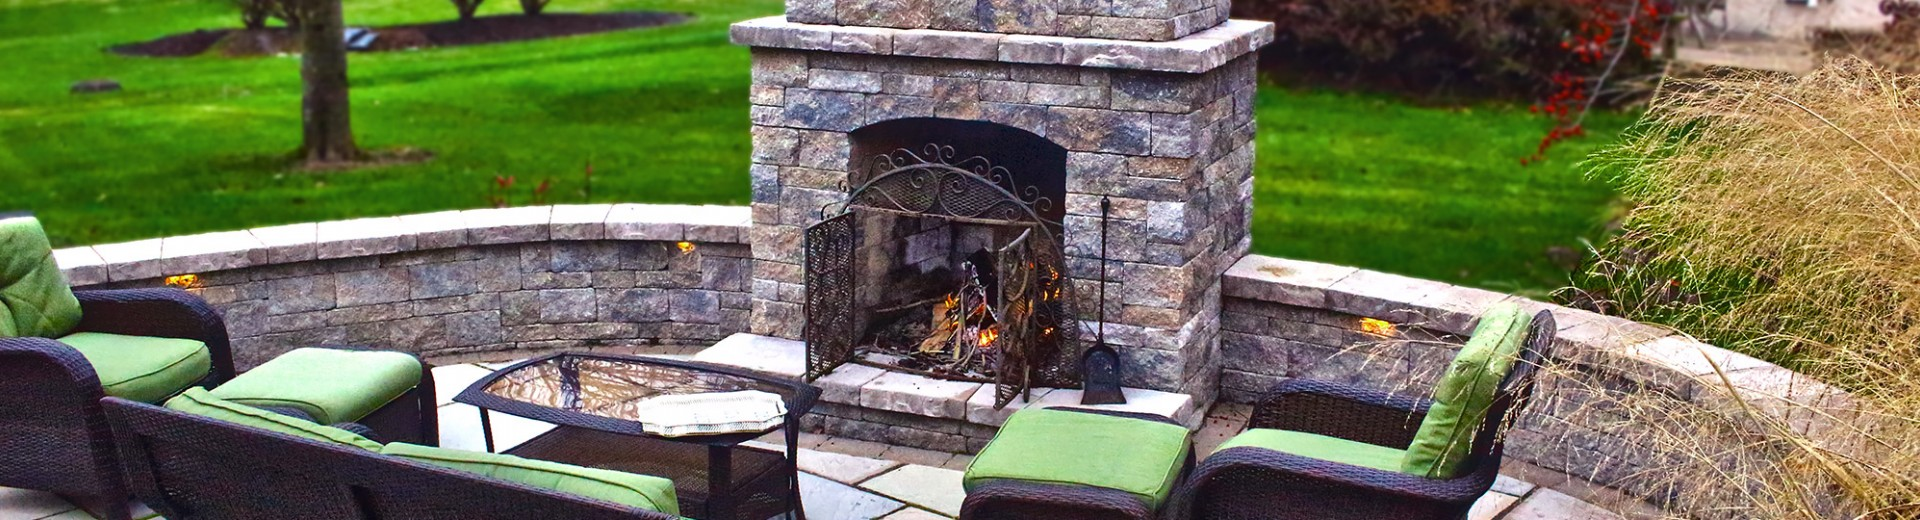 Landscaping with Outdoor Fireplace Lancaster PA